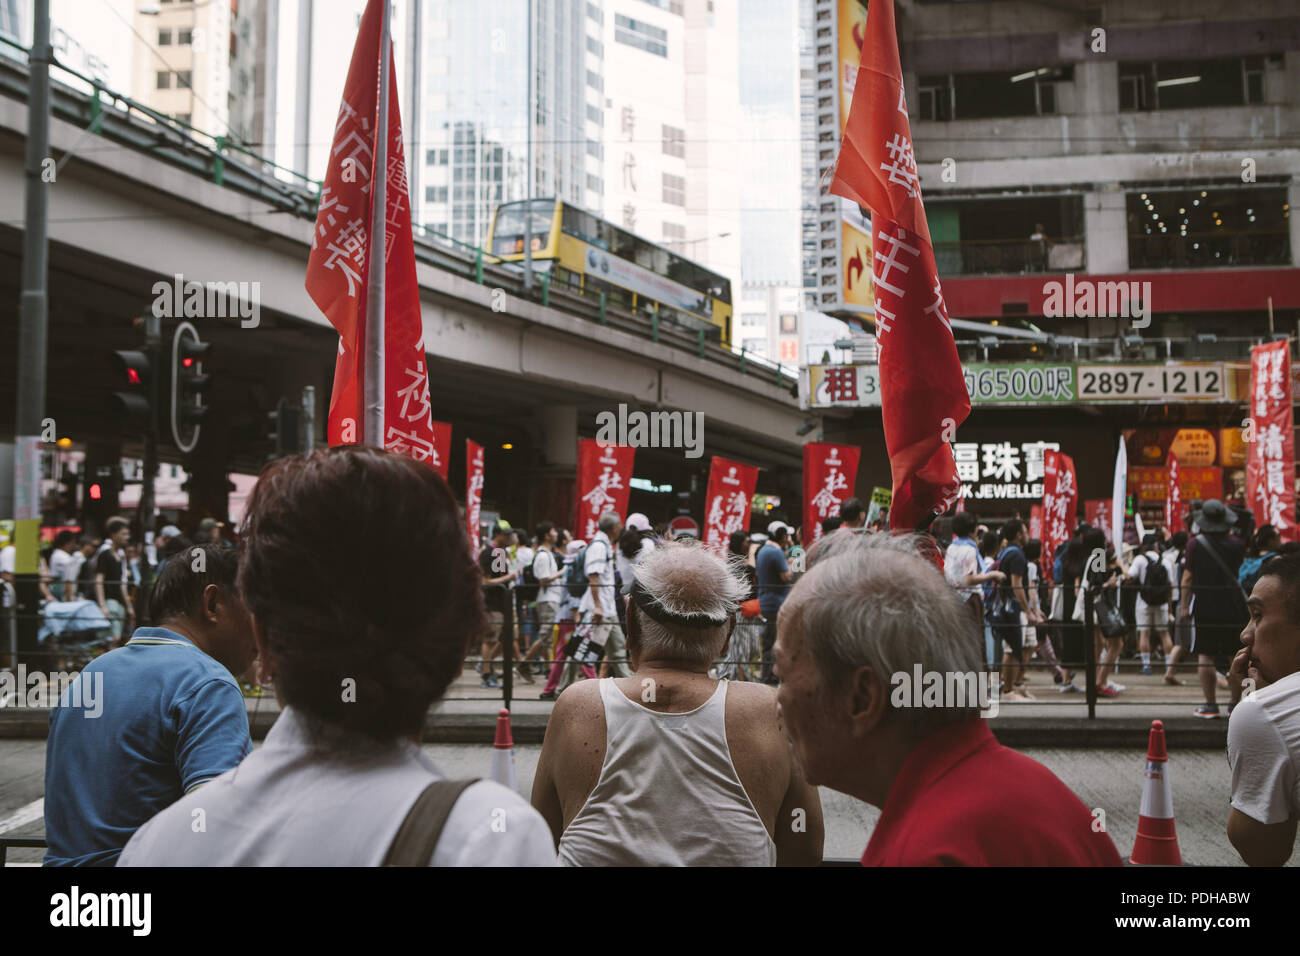 Hong Kong, Hong Kong. 1st July, 2017. People seen amazed by a stretch of both pro-China and pro-Hong Kong signs.Thousands came together and demonstrated to mark the 20th anniversary of the Handover from Britain to China, Hong Kong's return to China on July 1st 1997. The protestors marched through sun and rain from Victoria Park to Admiralty, taking a stand on a variety of human-rights-related causes. Credit: Viola Gaskell/SOPA Images/ZUMA Wire/Alamy Live News - Stock Image